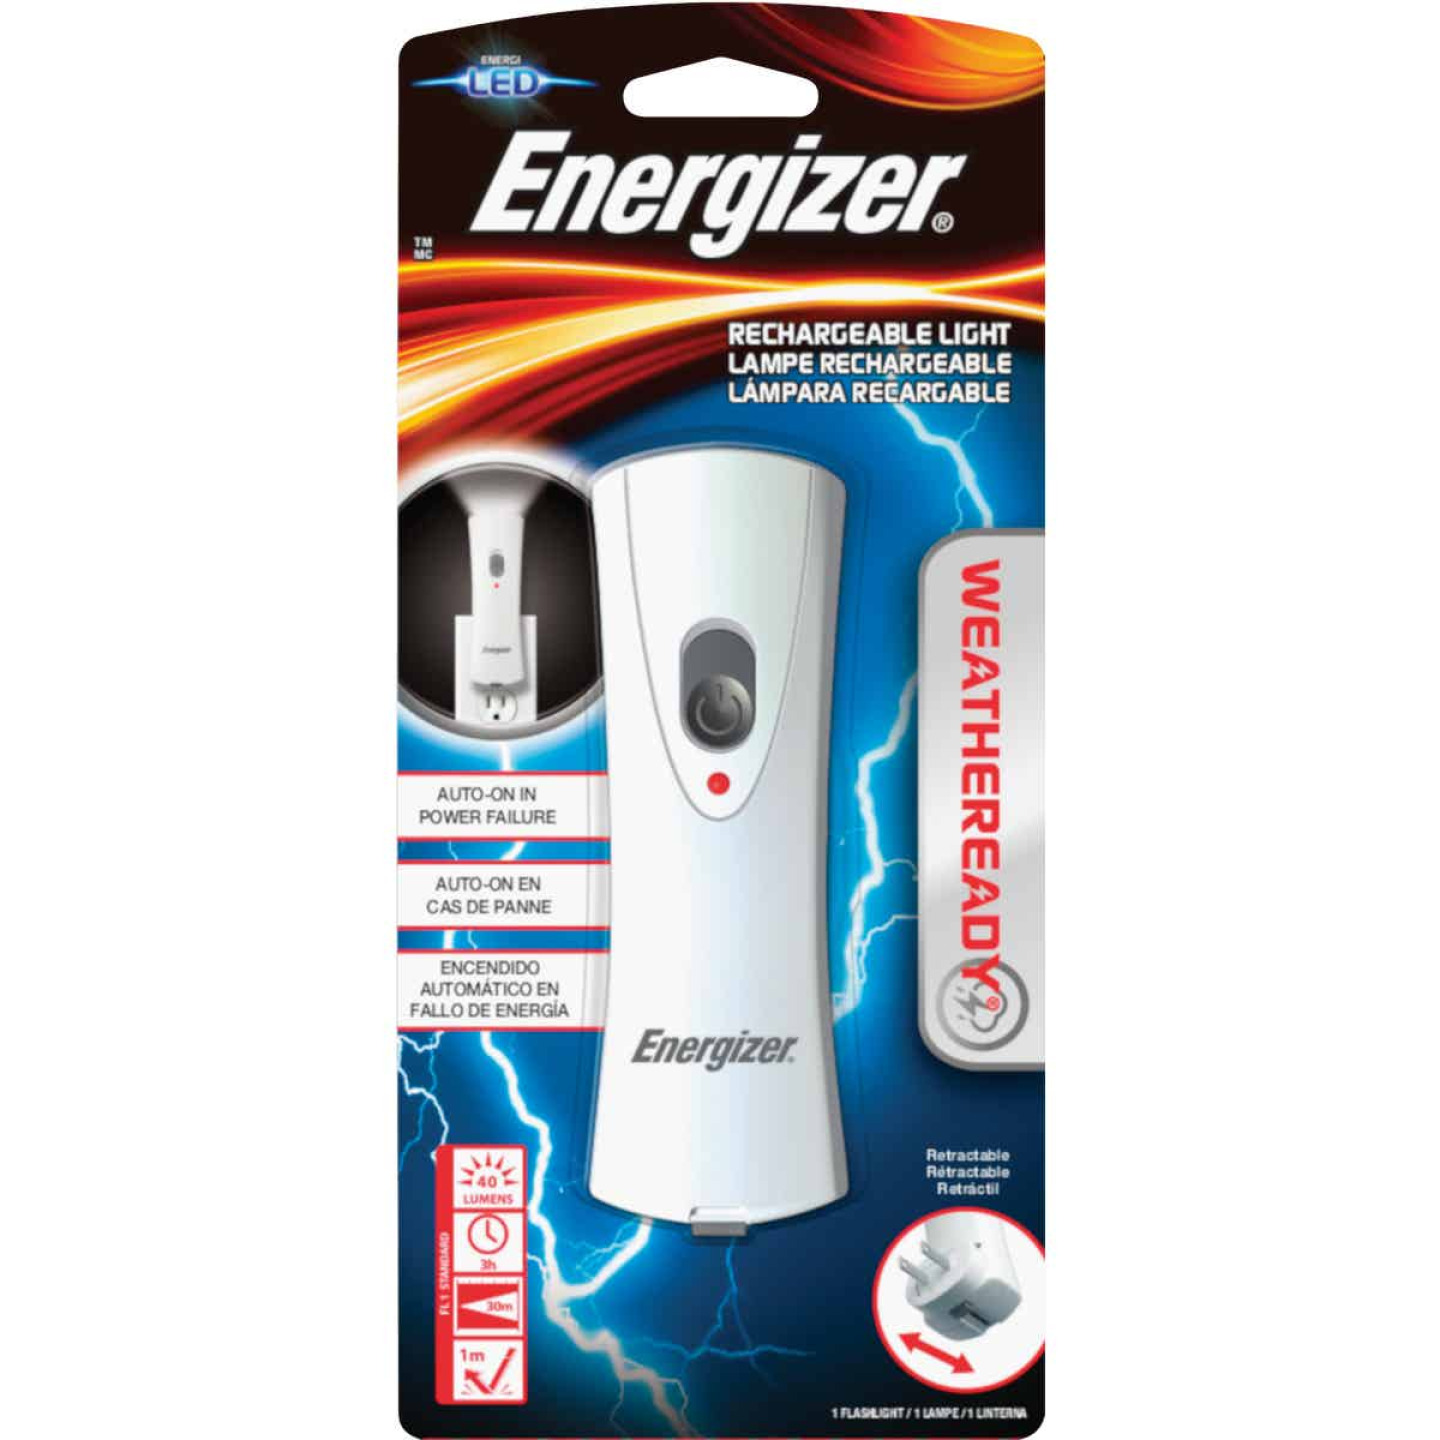 Energizer Weatheready LED Plastic Rechargeable Flashlight Image 1